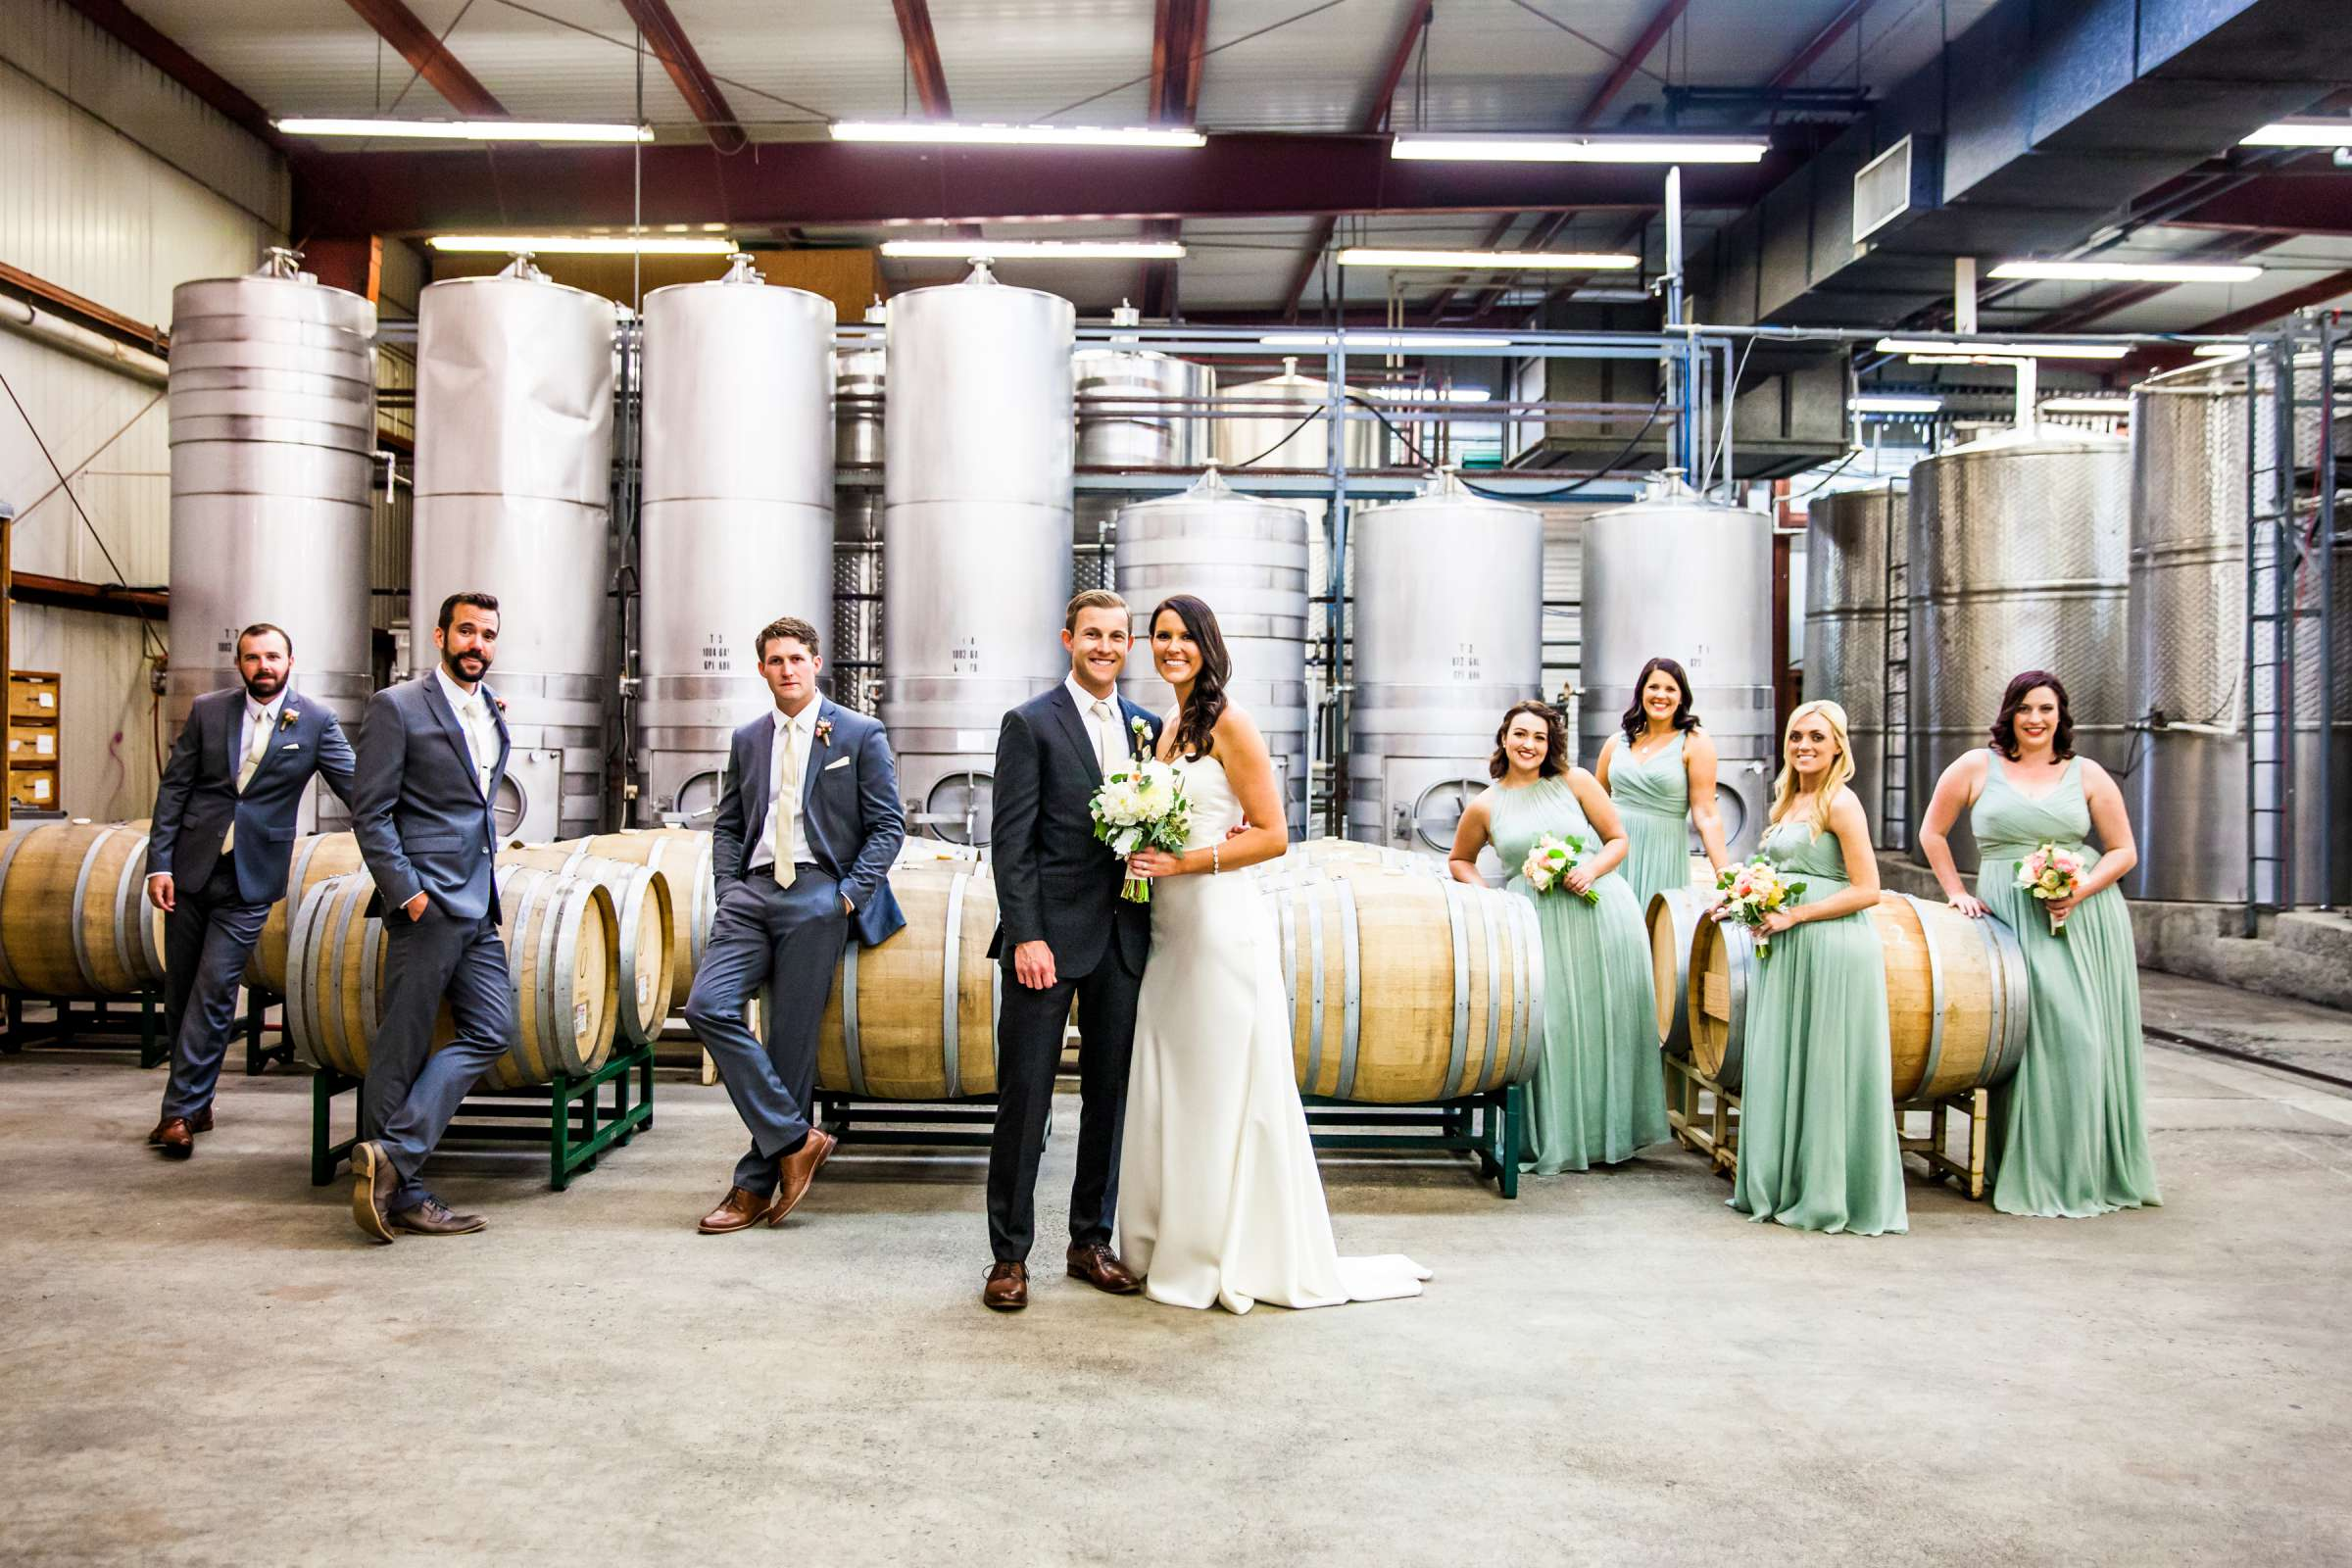 Rustic photo, Winery, Bridal Party at Orfila Vineyards Wedding, Brittany and Matt Wedding Photo #14 by True Photography